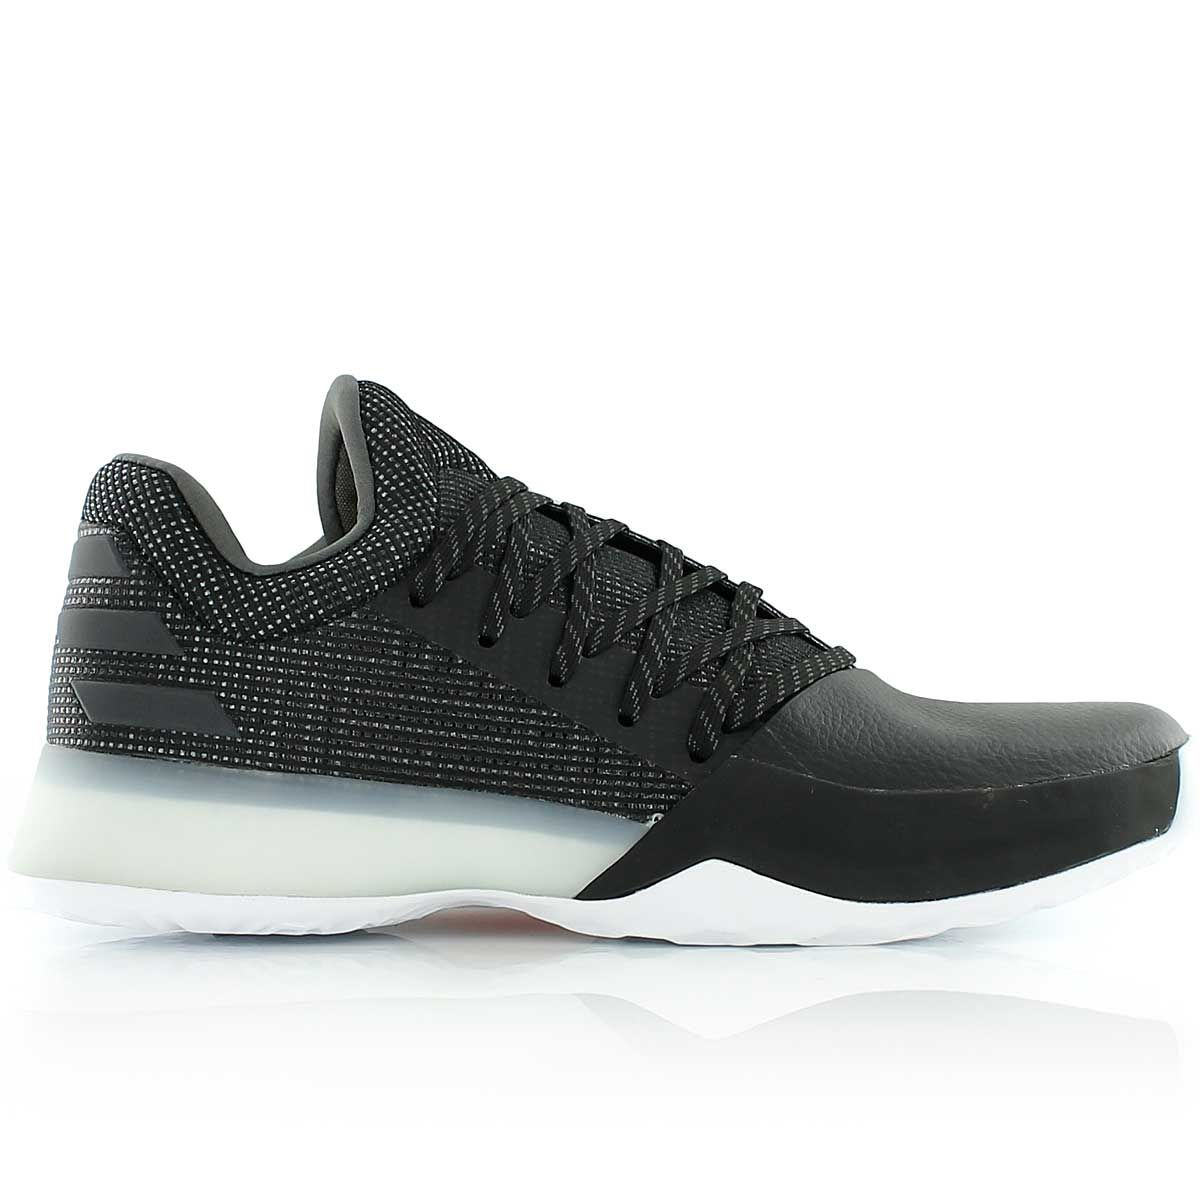 8404c785161c adidas performance Harden Vol. 1 core black carbon HI-RES RED S18 ...